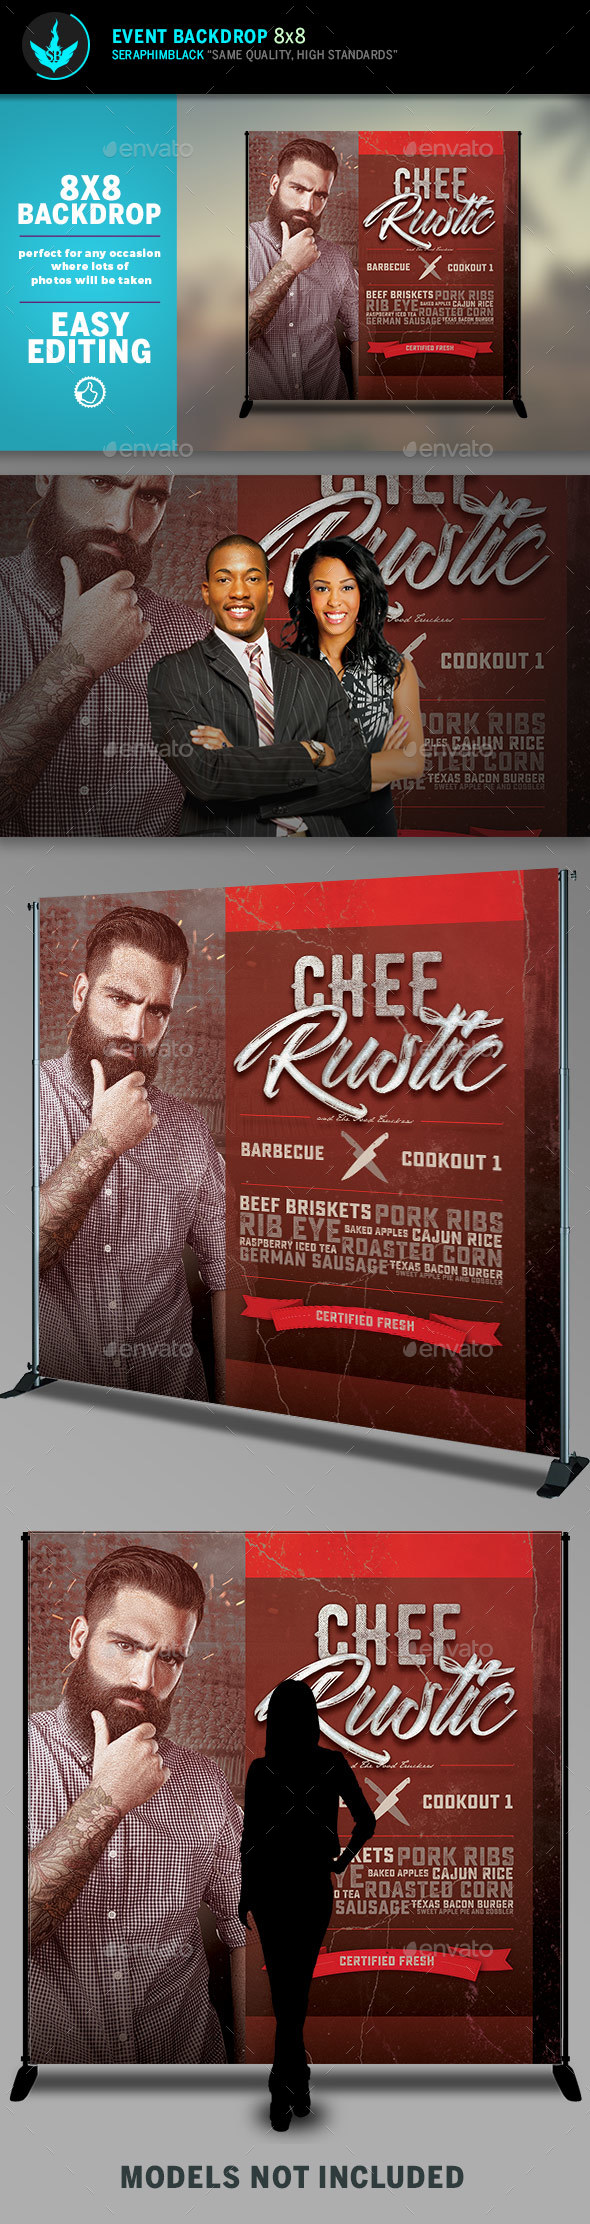 Chef Cookout 8x8 Event Backdrop Template - Signage Print Templates